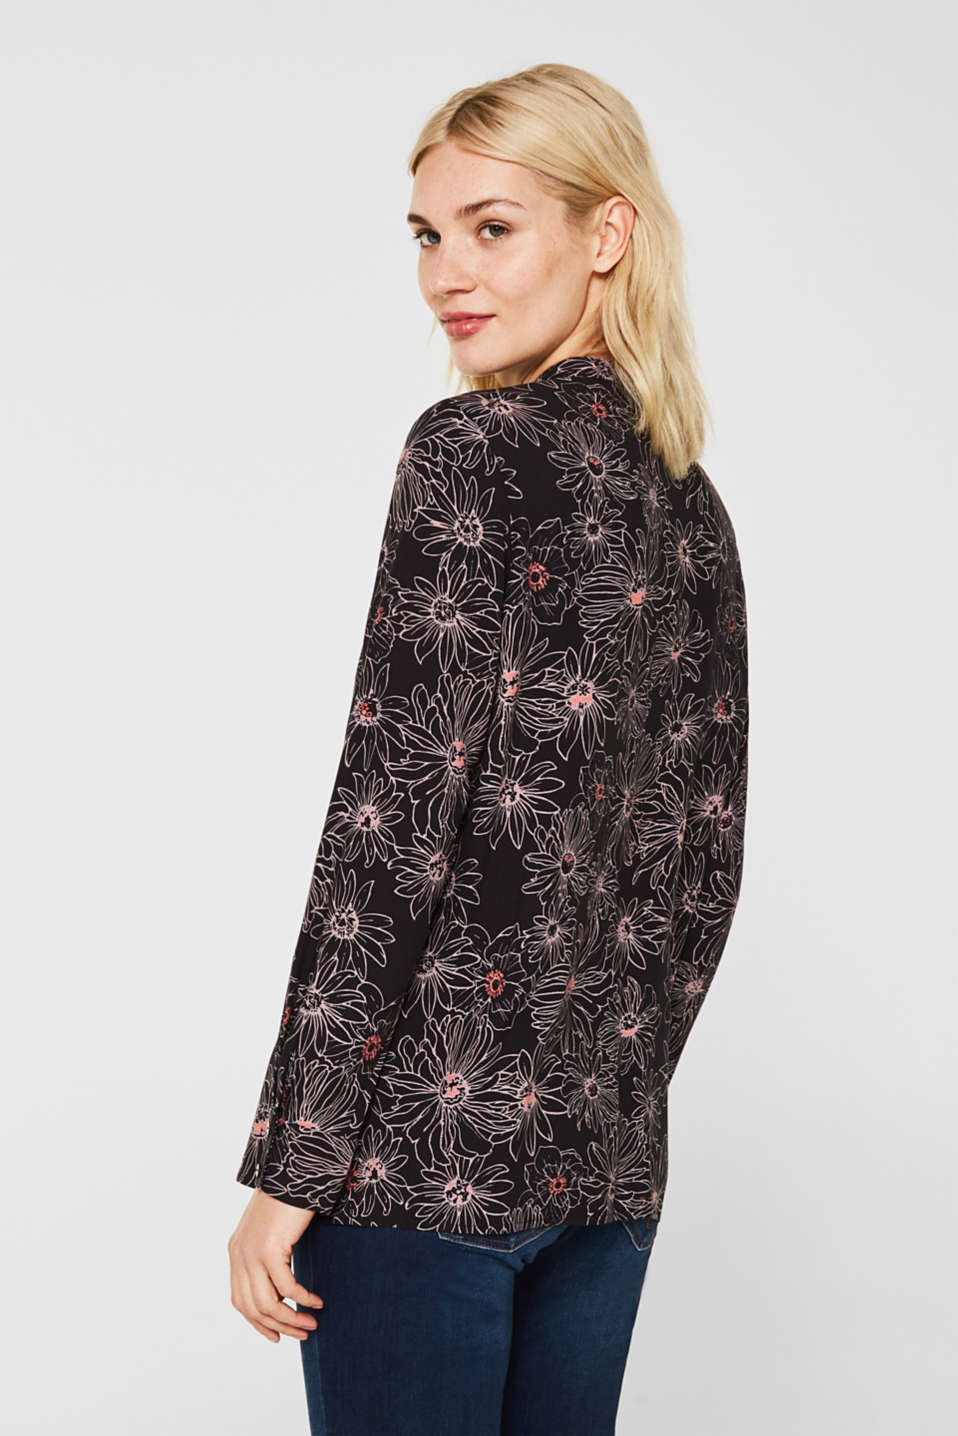 Slip-on blouse with a print and band collar, BLACK 3, detail image number 3